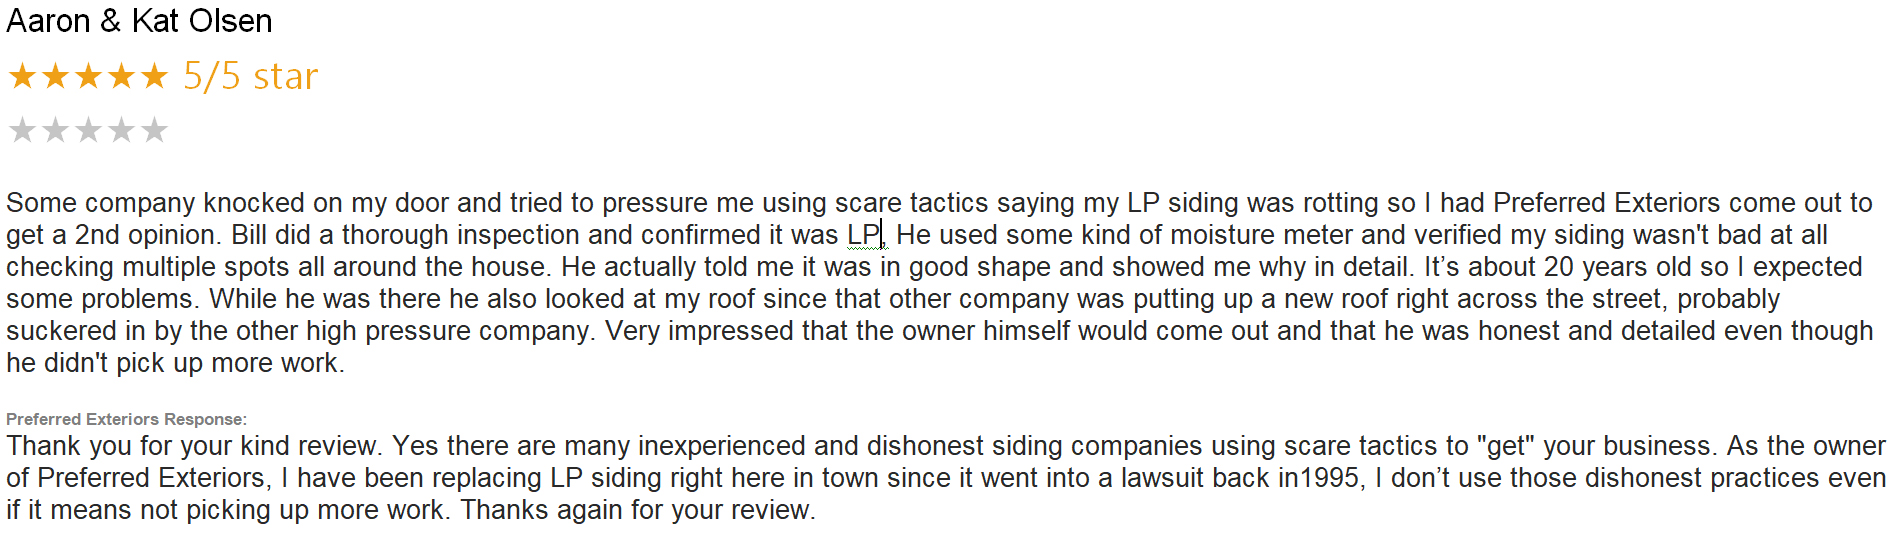 Preferred Exteriors Review